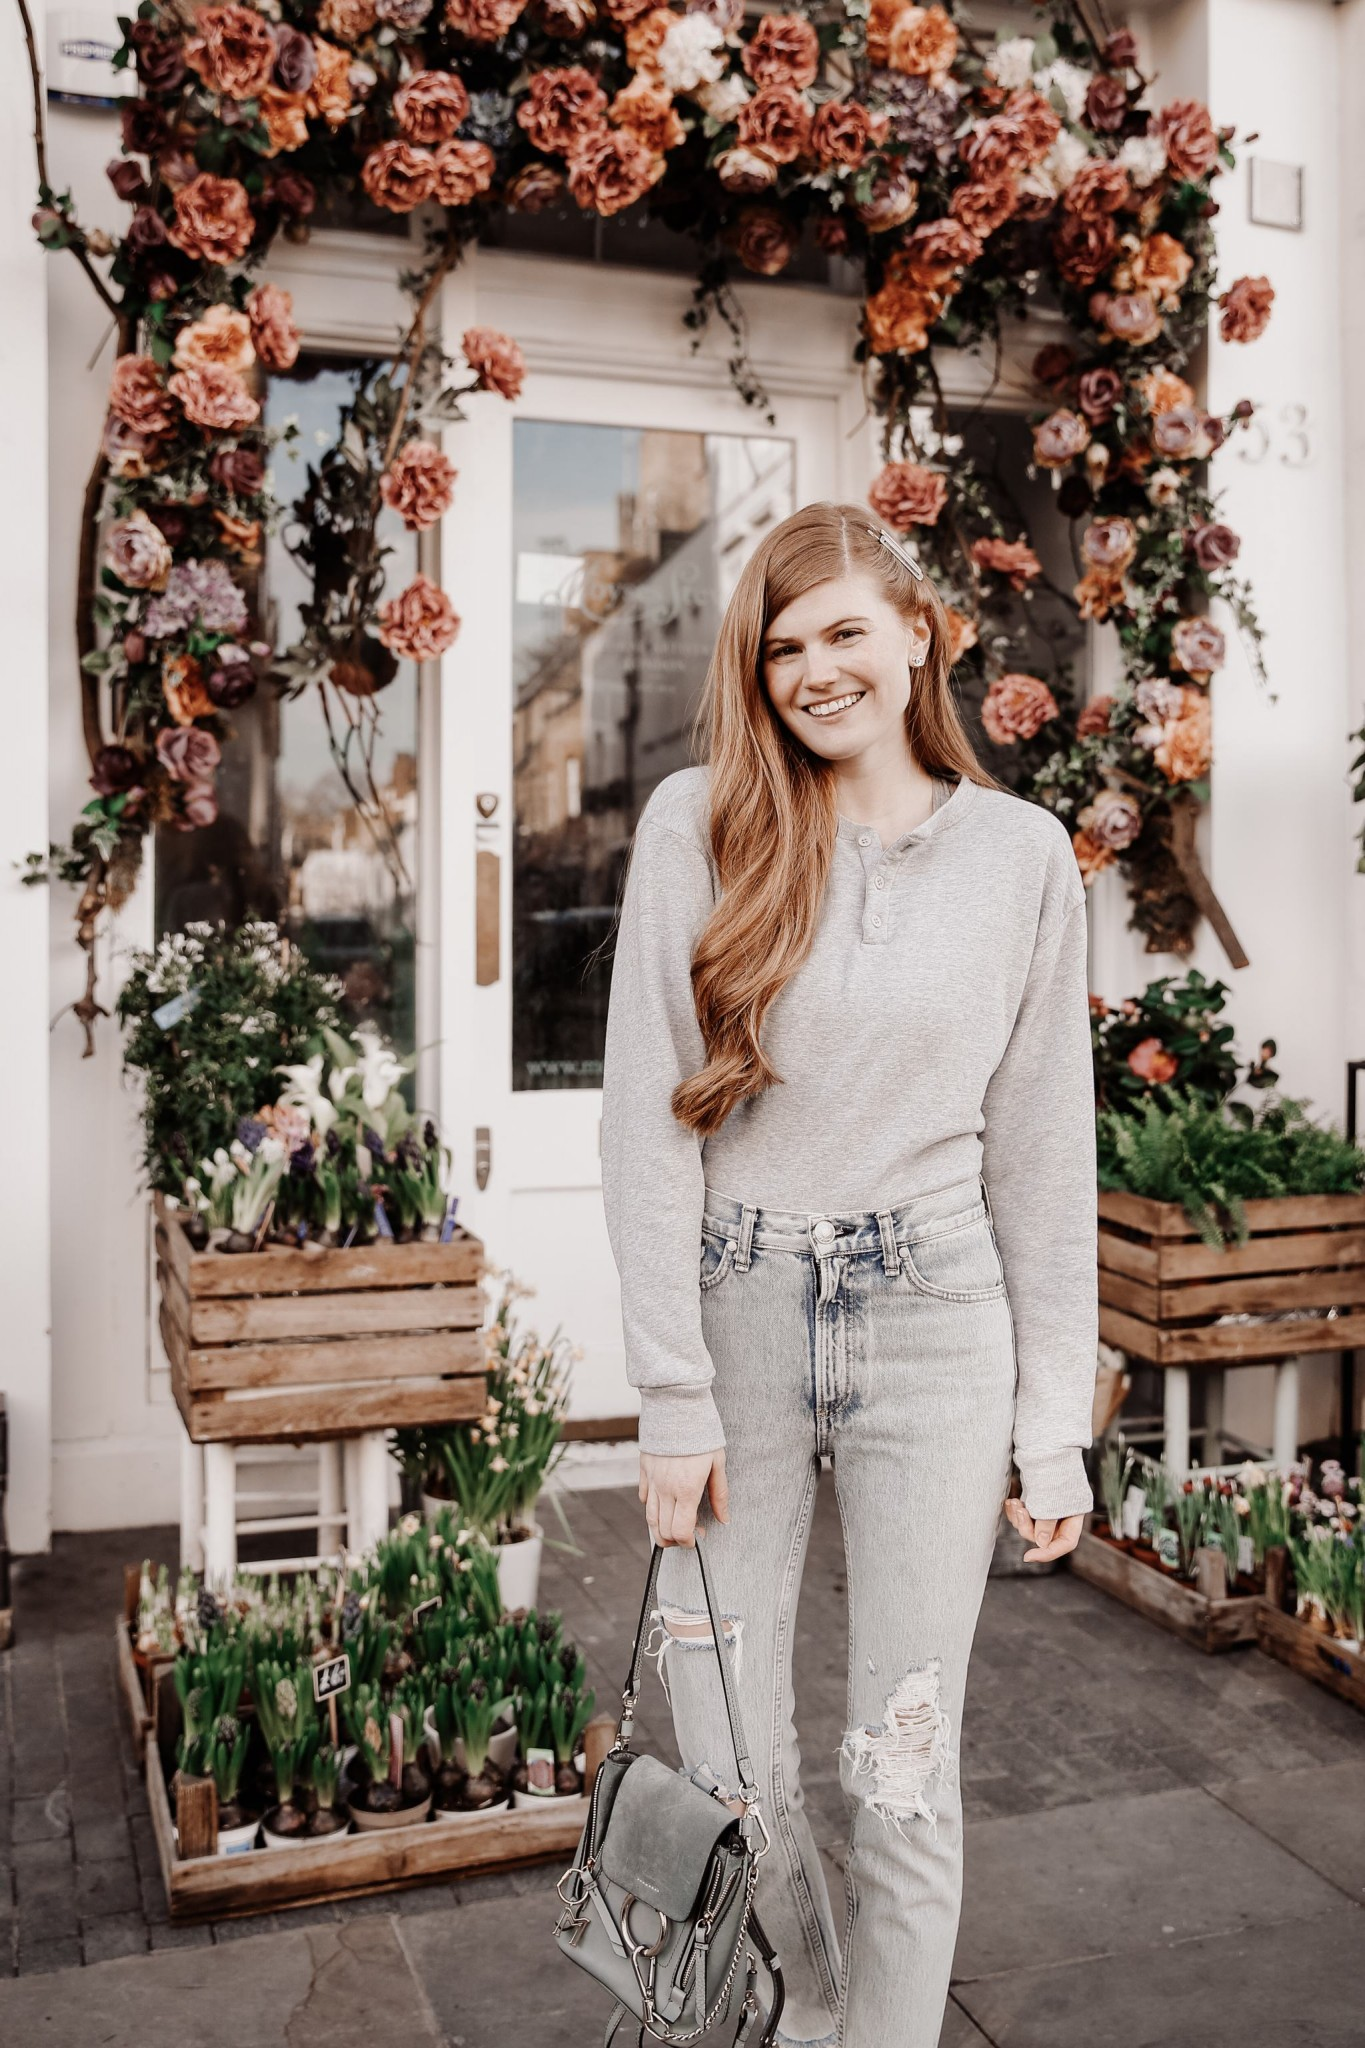 Golden Goose Sneakers featured by top UK fashion blogger Mollie Moore; Image of a woman wearing ZARA WOOL COAT, BRANDY MELVILLE CROPPED SWEATSHIRT, RAG & BONE DISTRESSED JEANS, CHLOE FAYE MINI BACKPACK, GOLDEN GOOSE SLIDE HIGH TOPS and ASOS HAIR CLIPS.